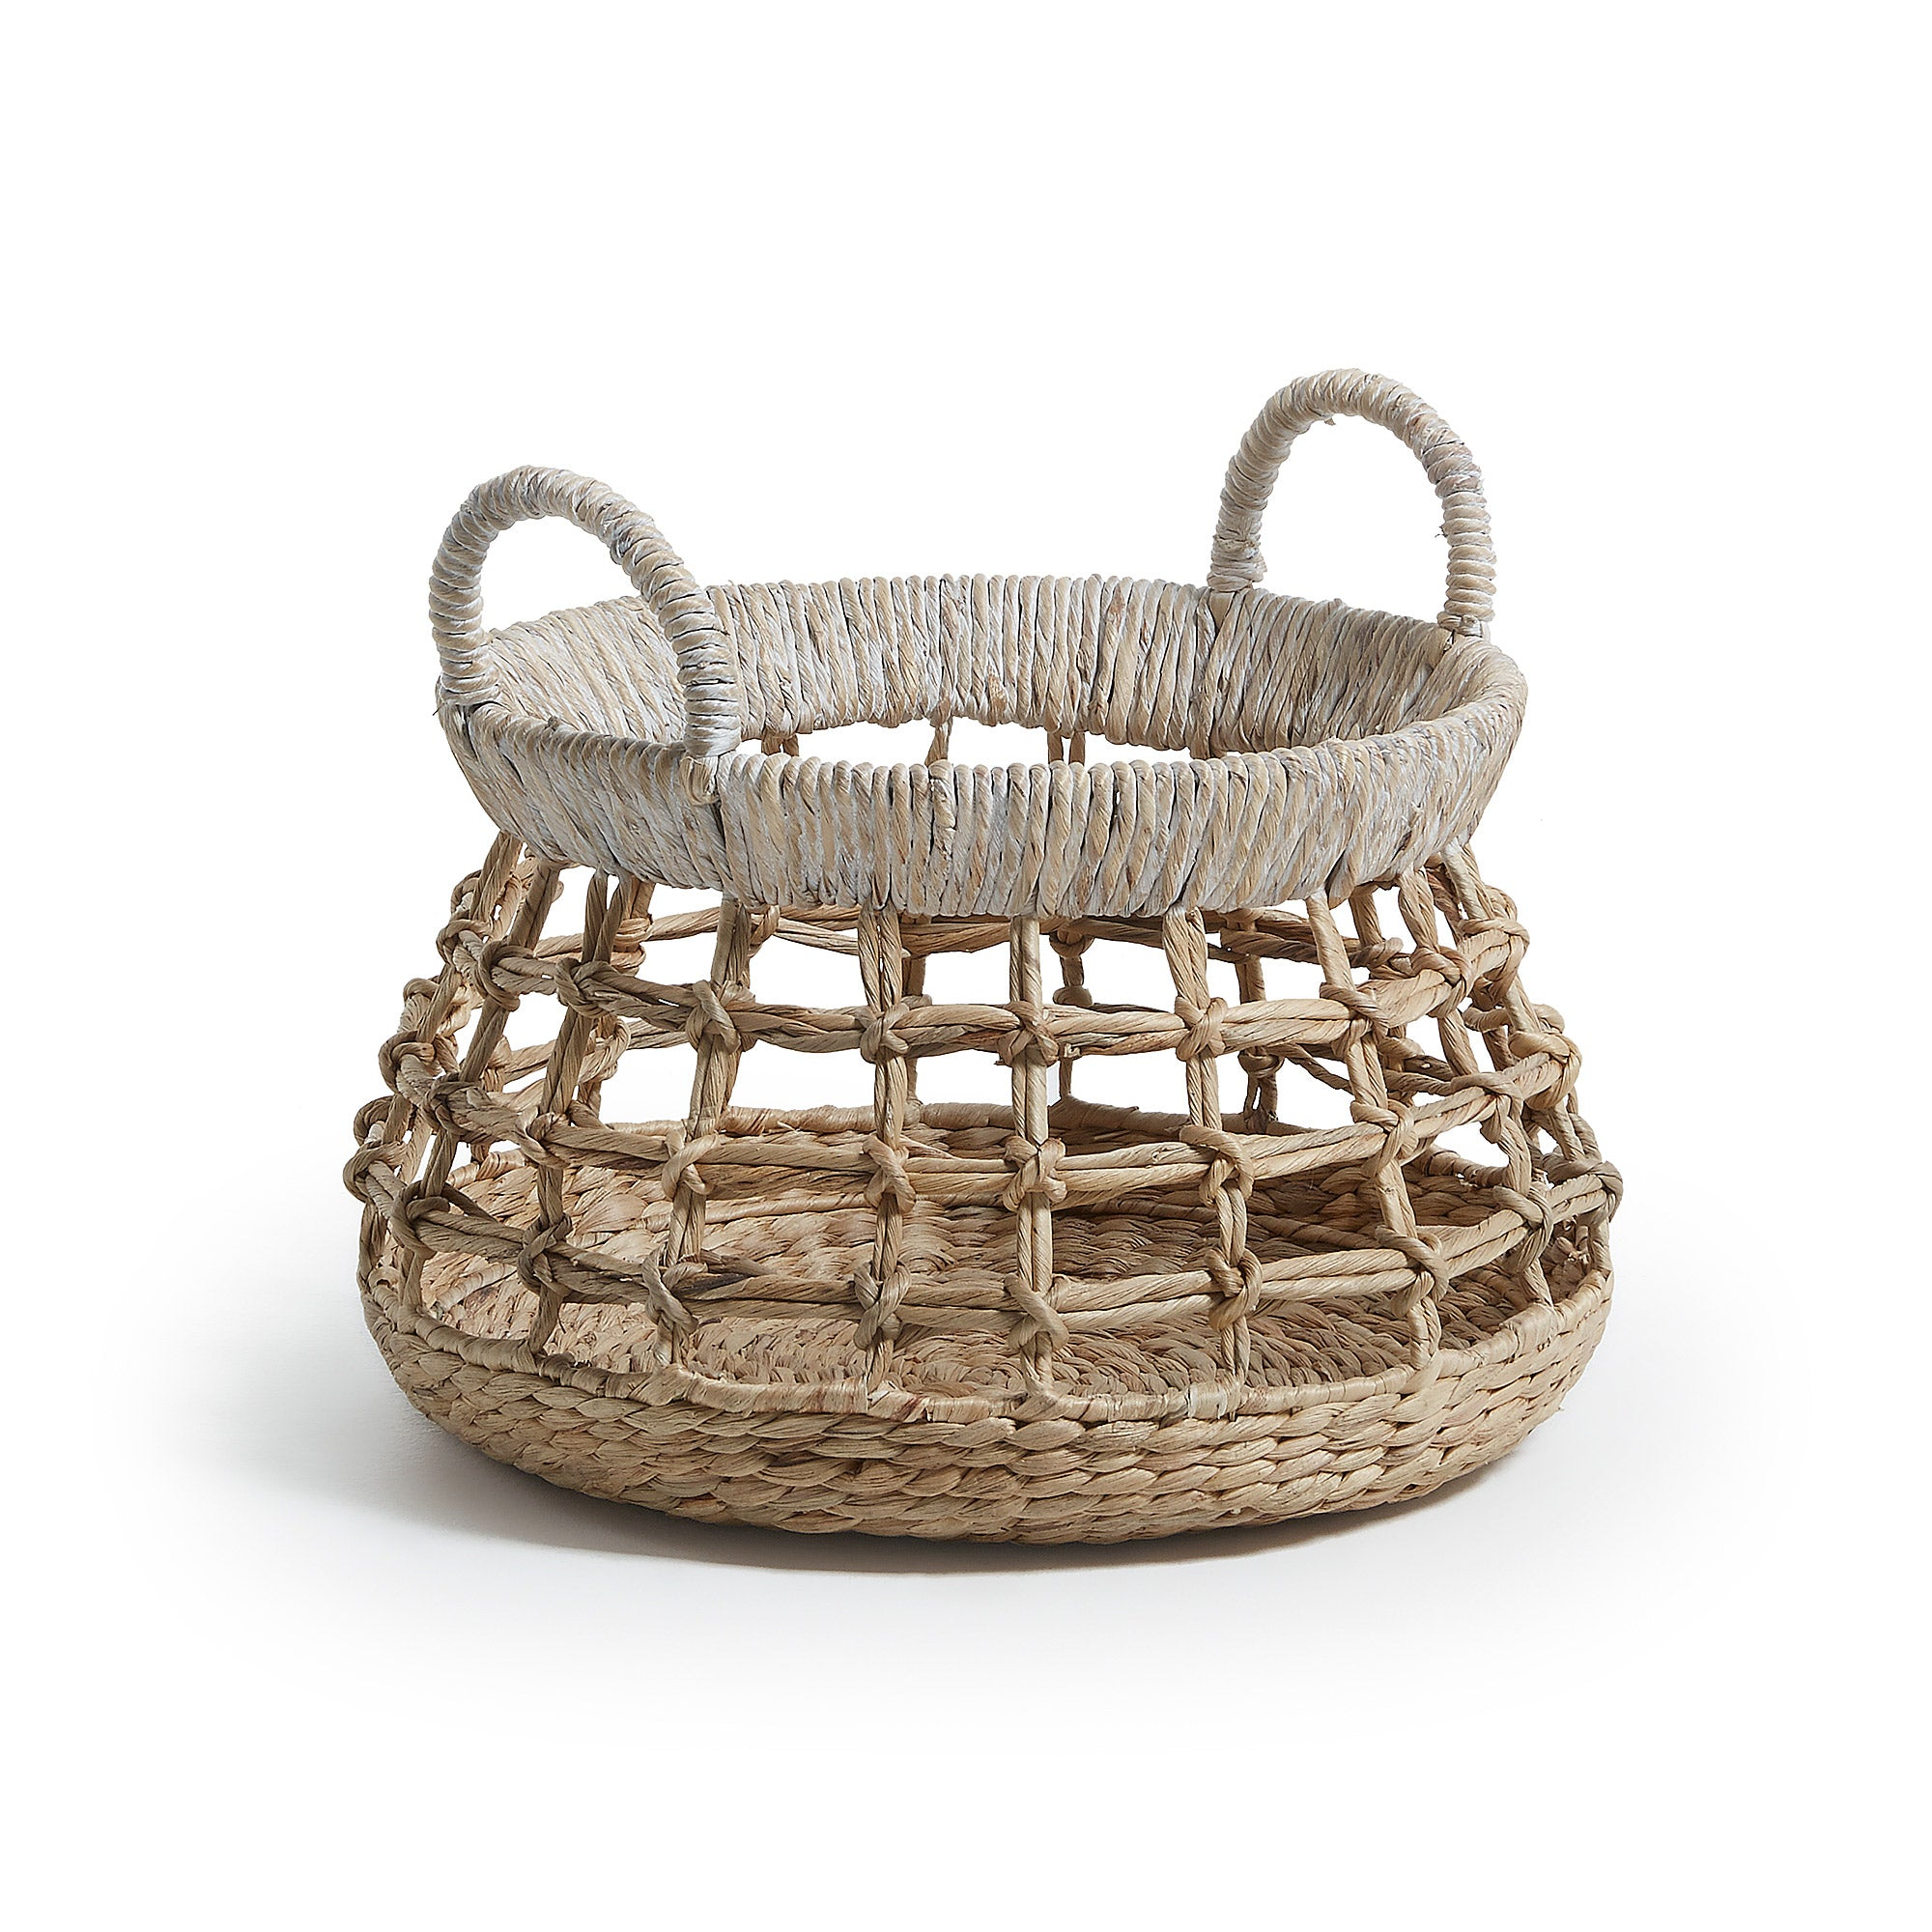 Avery Basket - Natural Water Hyacinth with White Top Detail, Basket - Home-Buy Interiors